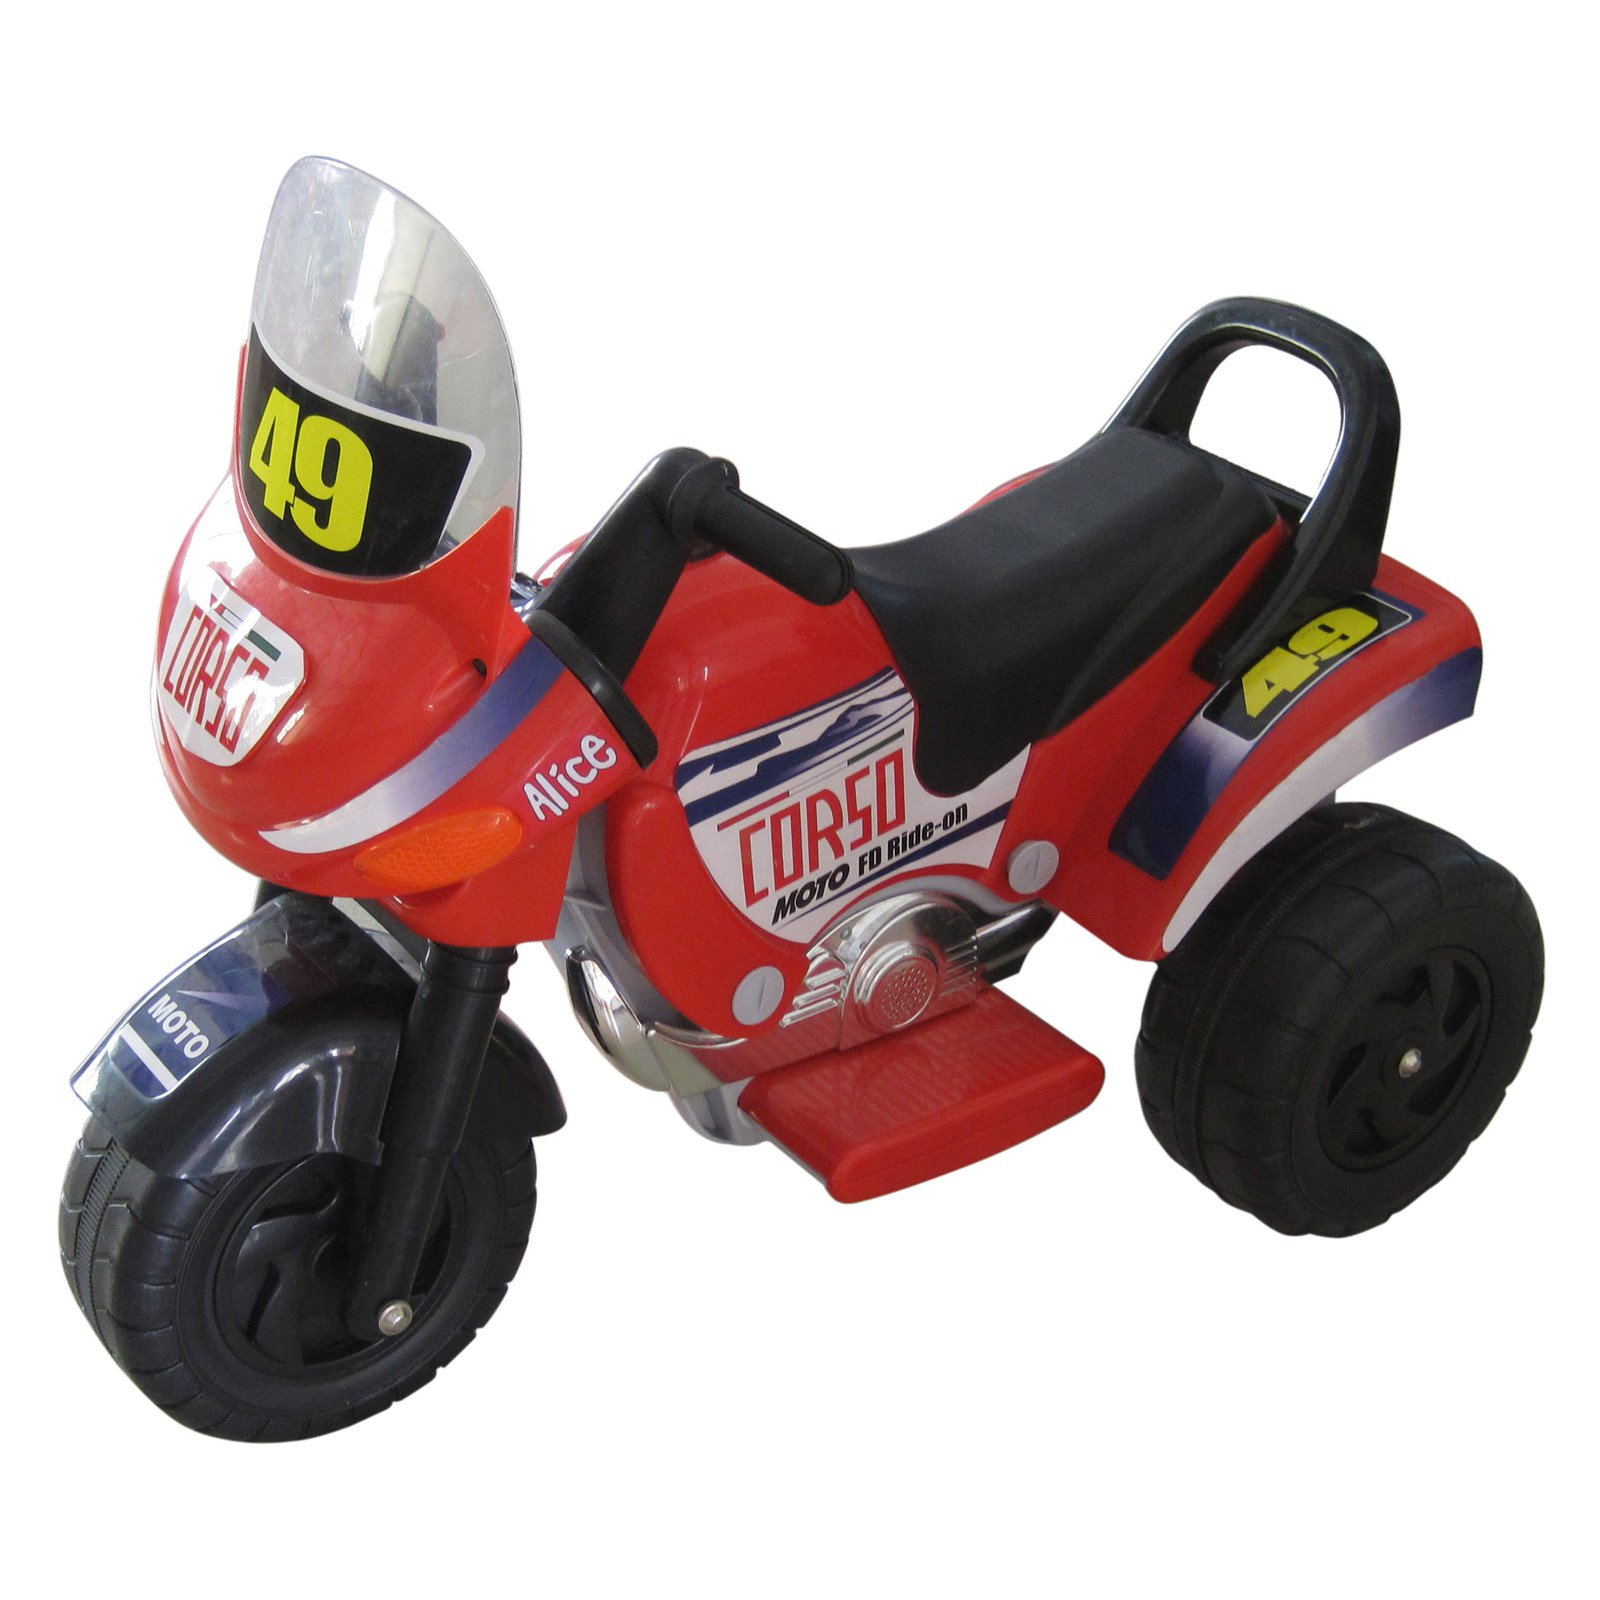 Merske Mini Racer Motorcycle - Red